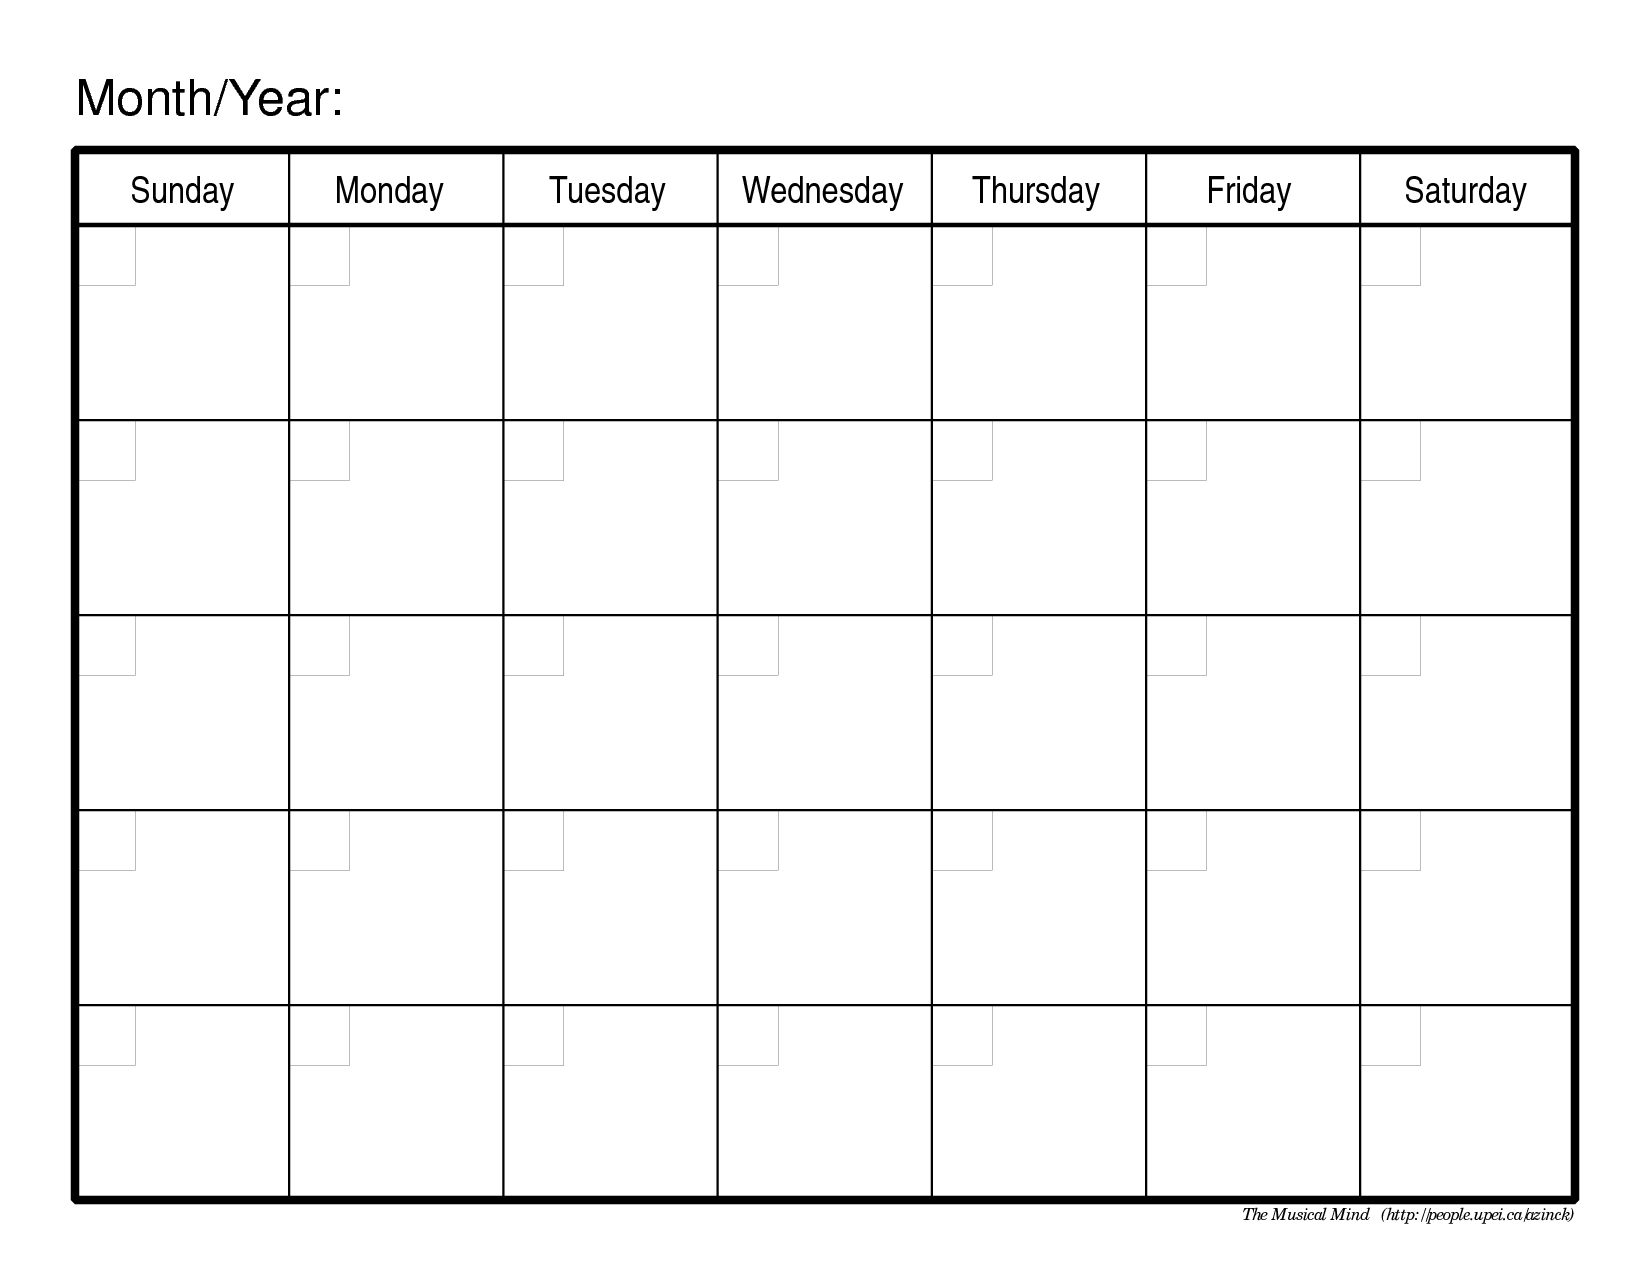 Free Printable Calendar - For My Running Schedule??